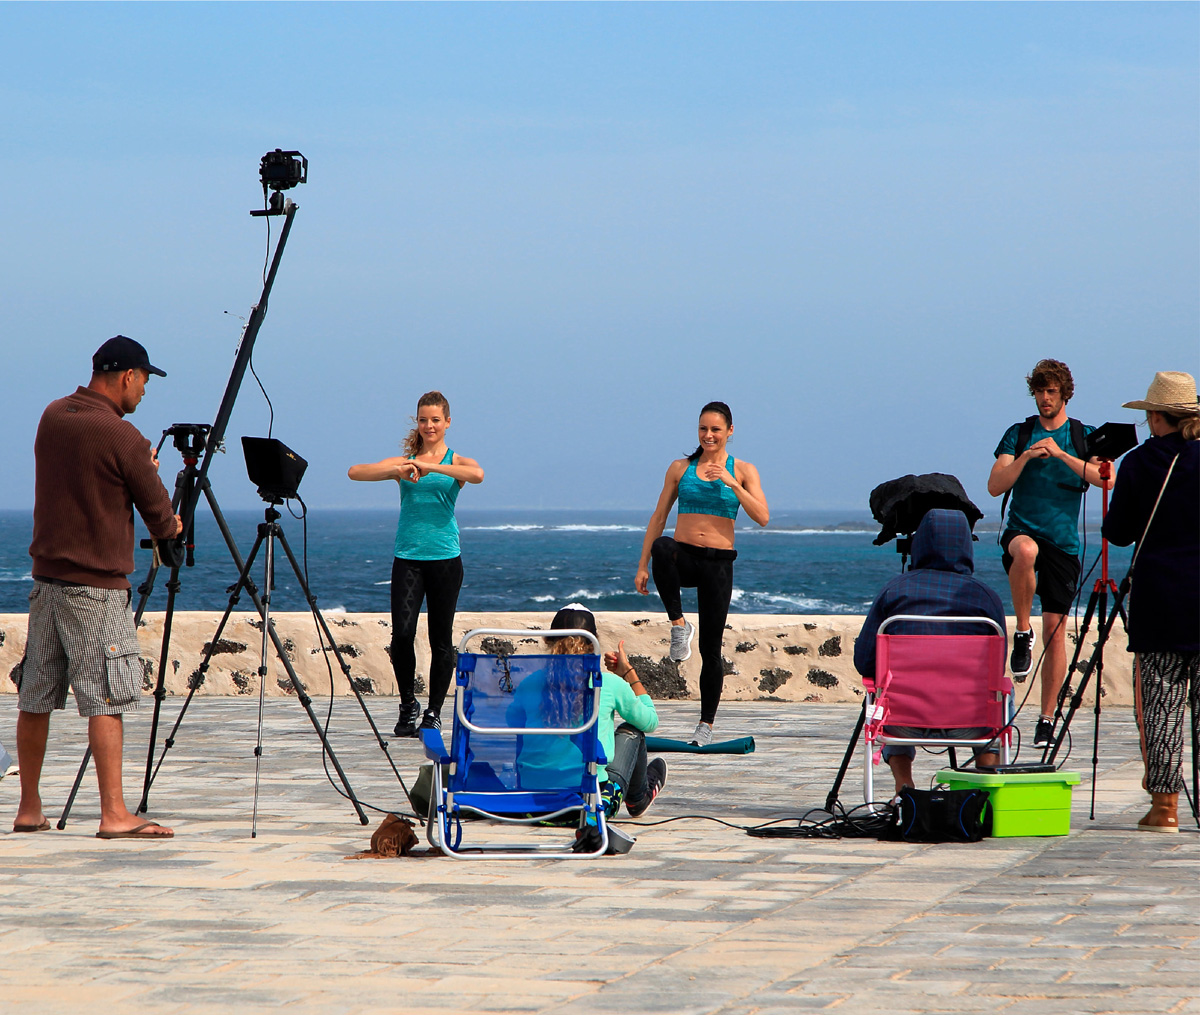 Promotional models conducting a demonstration on the beach in front of a camera crew